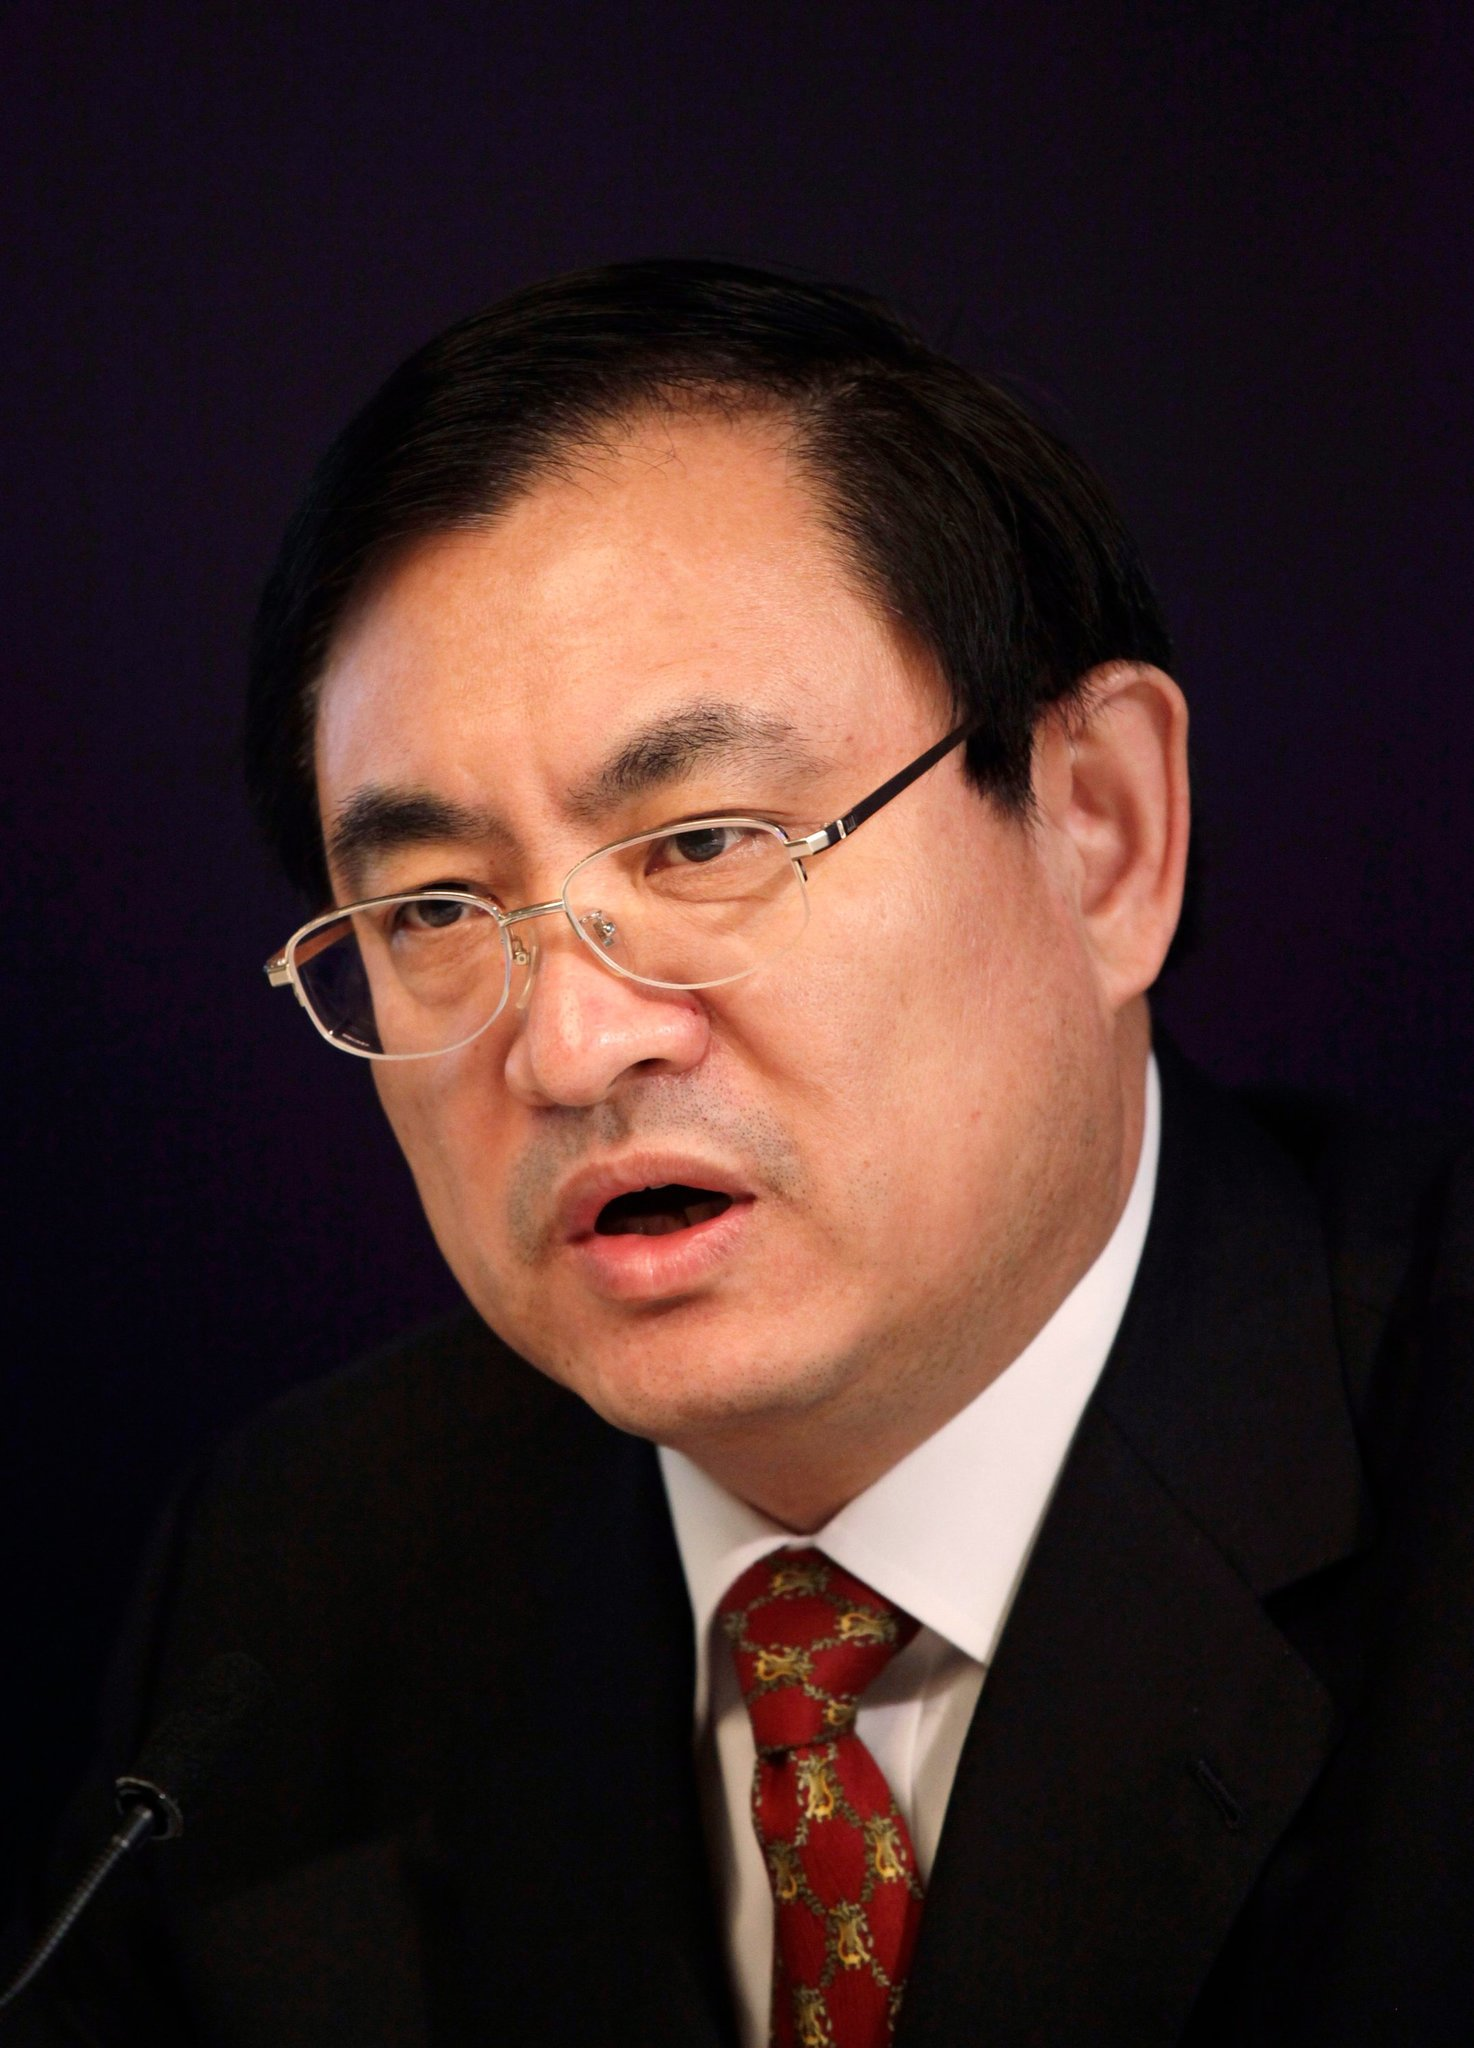 Sinopec President Investigated for Corruption